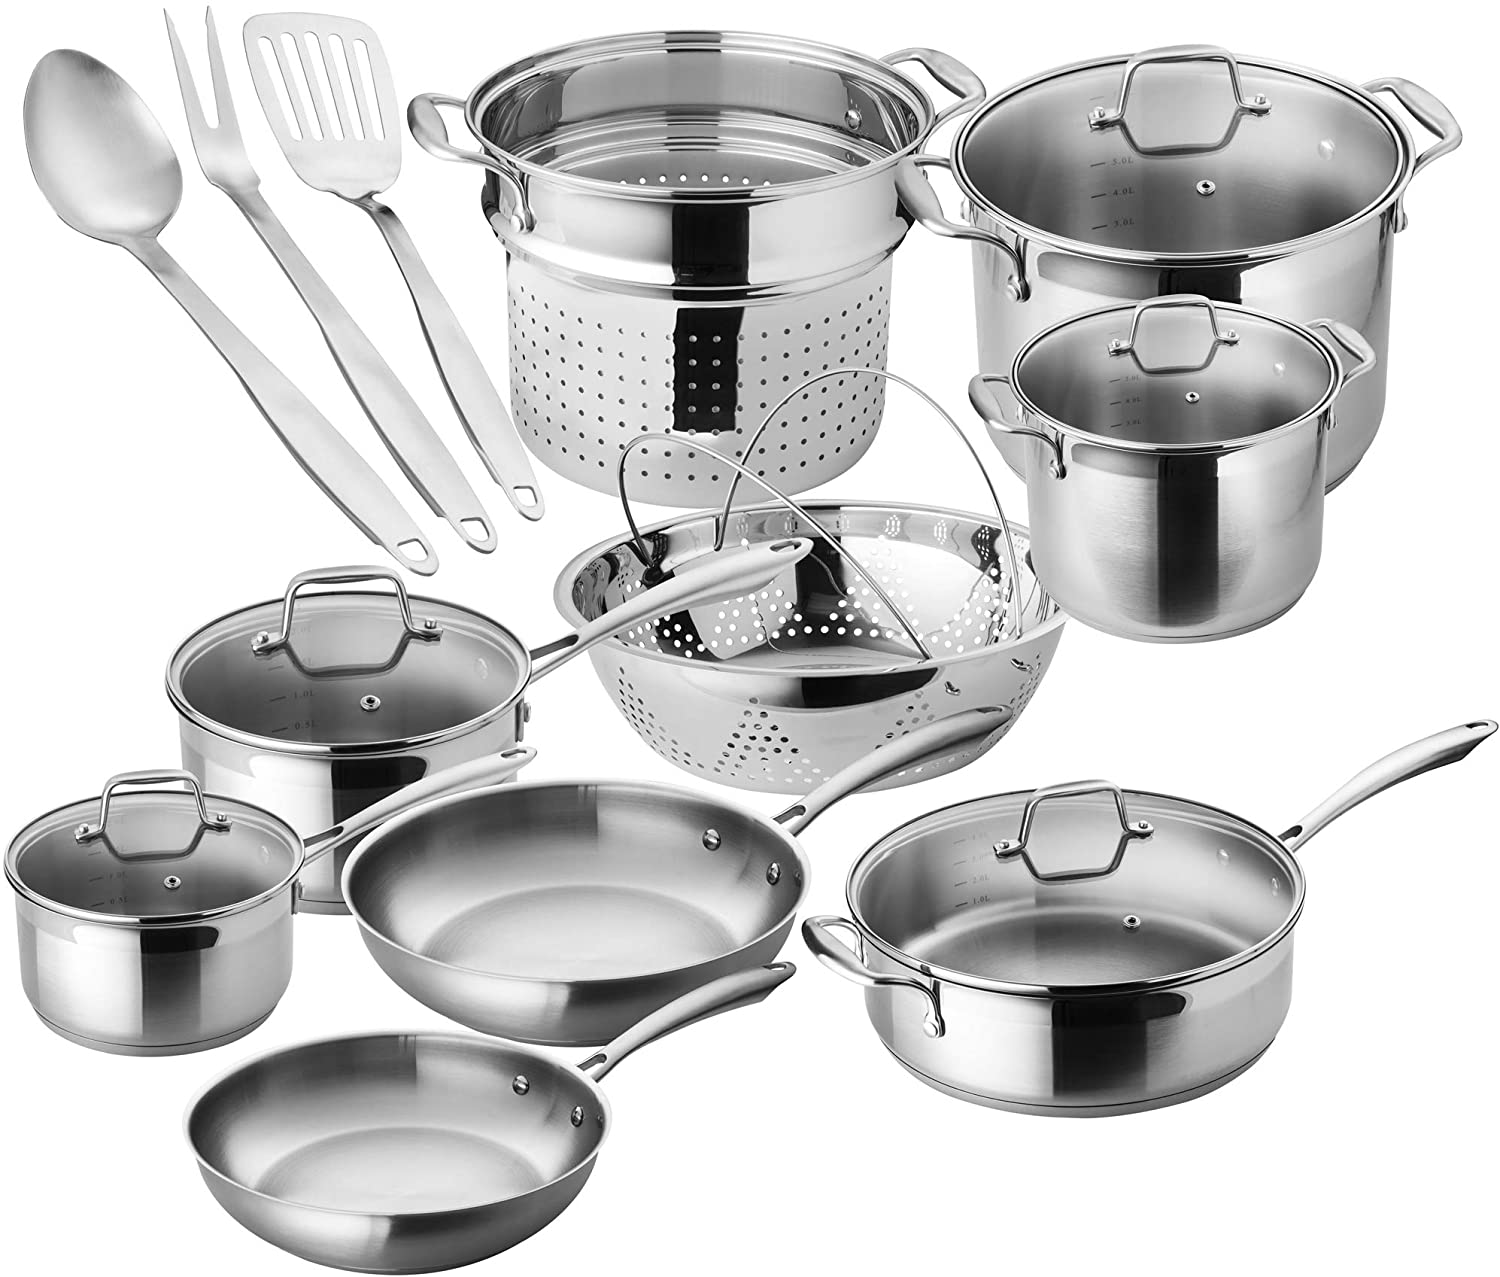 10 Best Stainless Steel Cookware Sets Top List For 2020 Updated Cookware Ideas